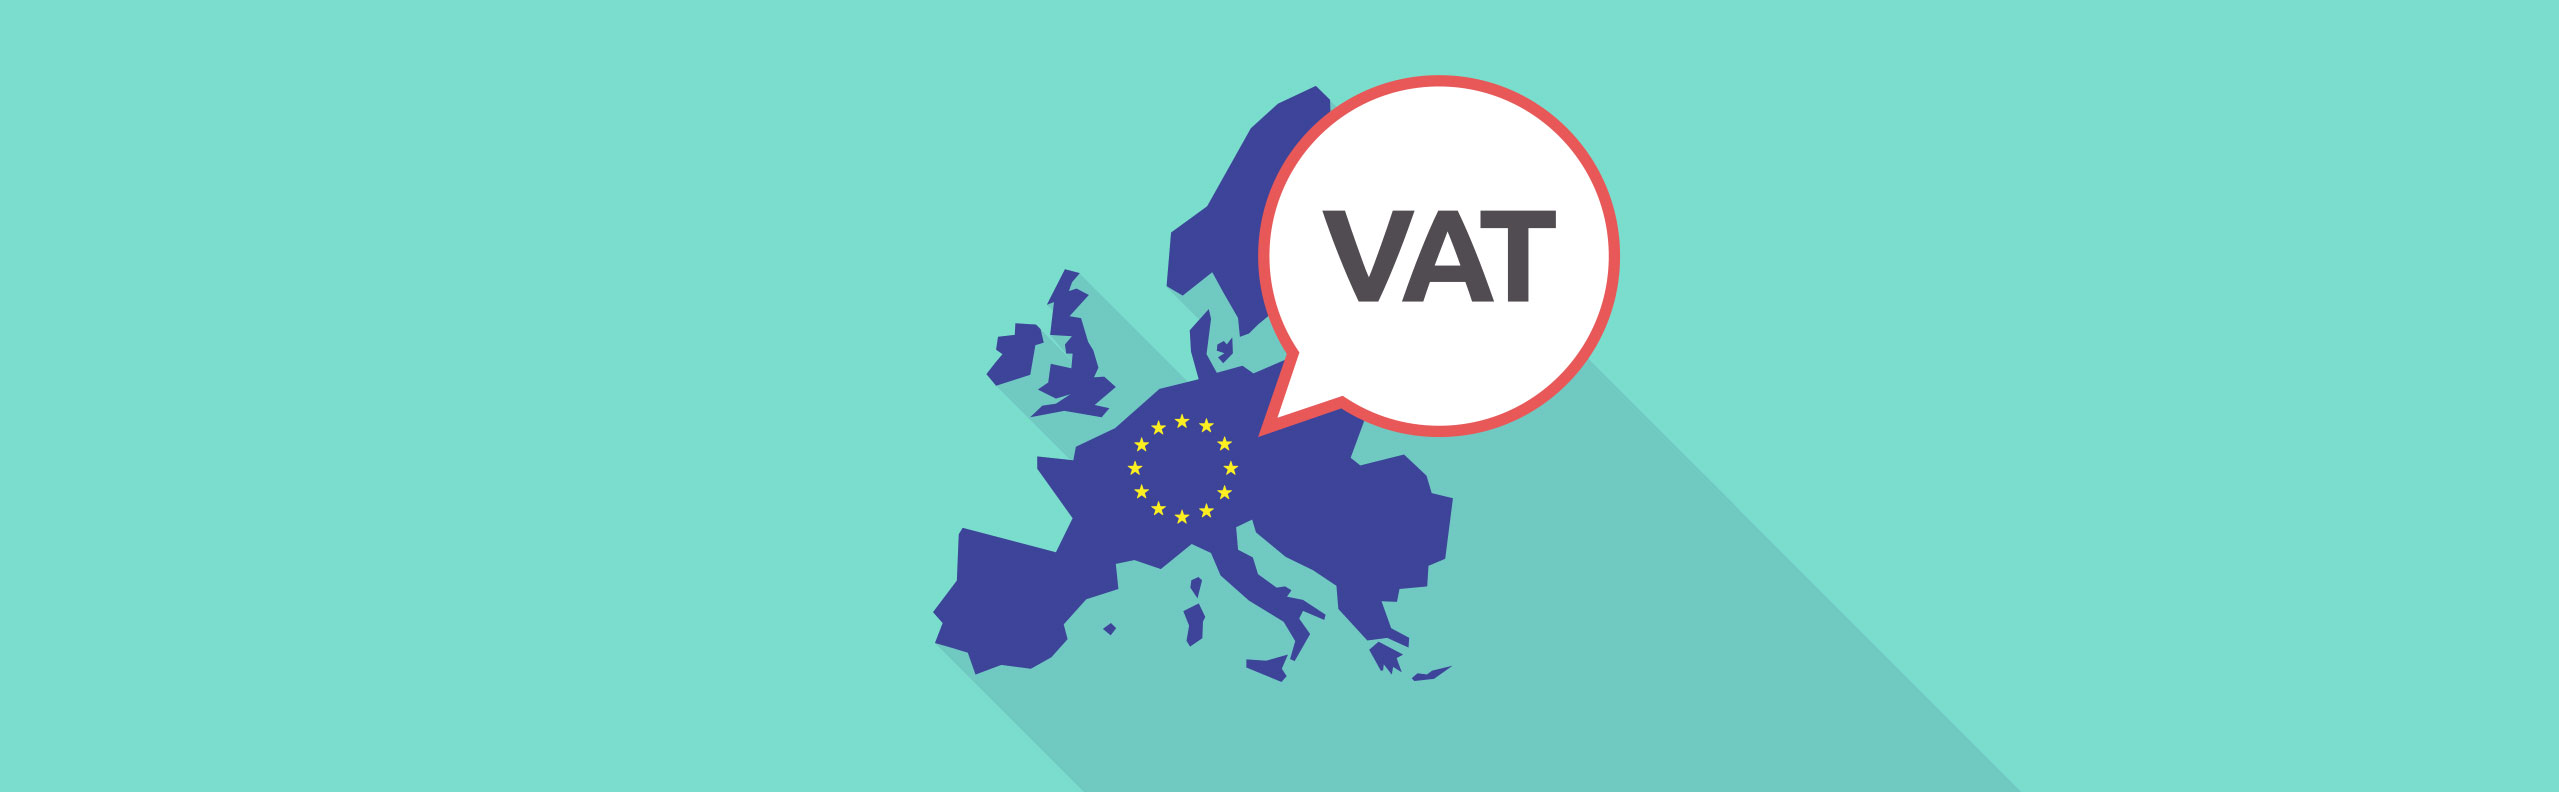 VAT (Value-Added Tax) and SaaS (Software as a Service)